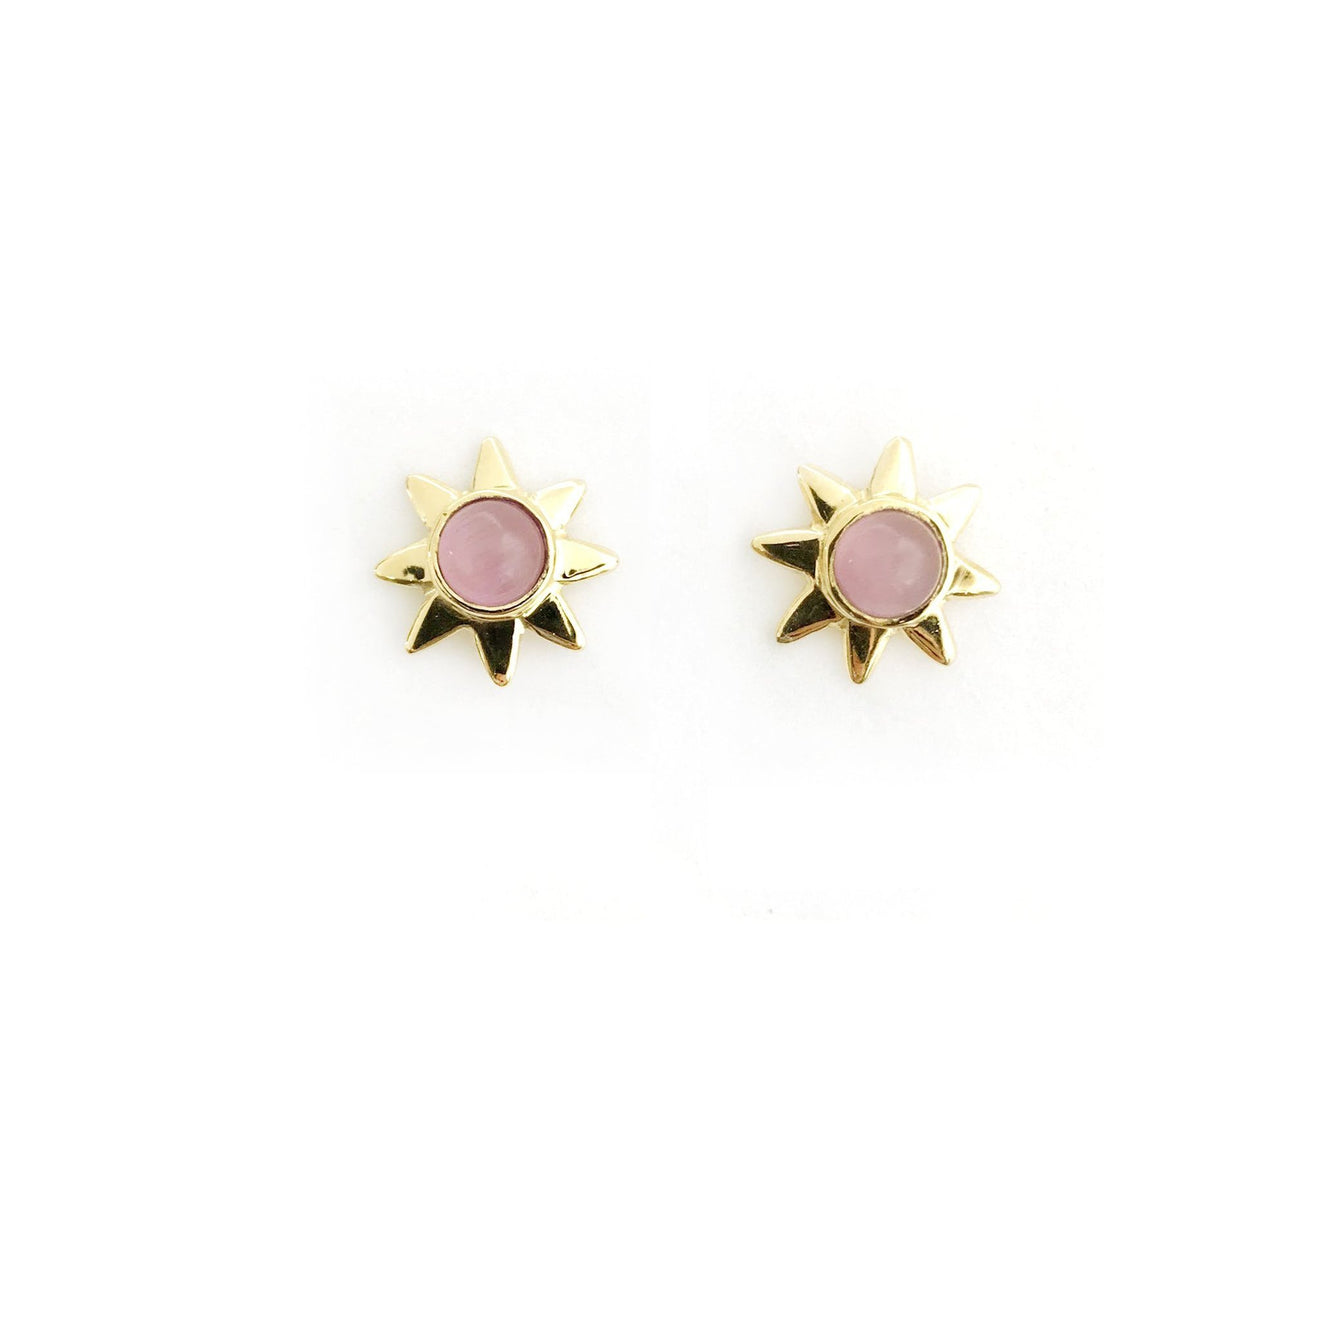 Starr 24k Gold Studs Genuine Gemstone Earrings-Women - Jewelry - Earrings-ADDISON WEEKS-Pink Opal-Peccadilly